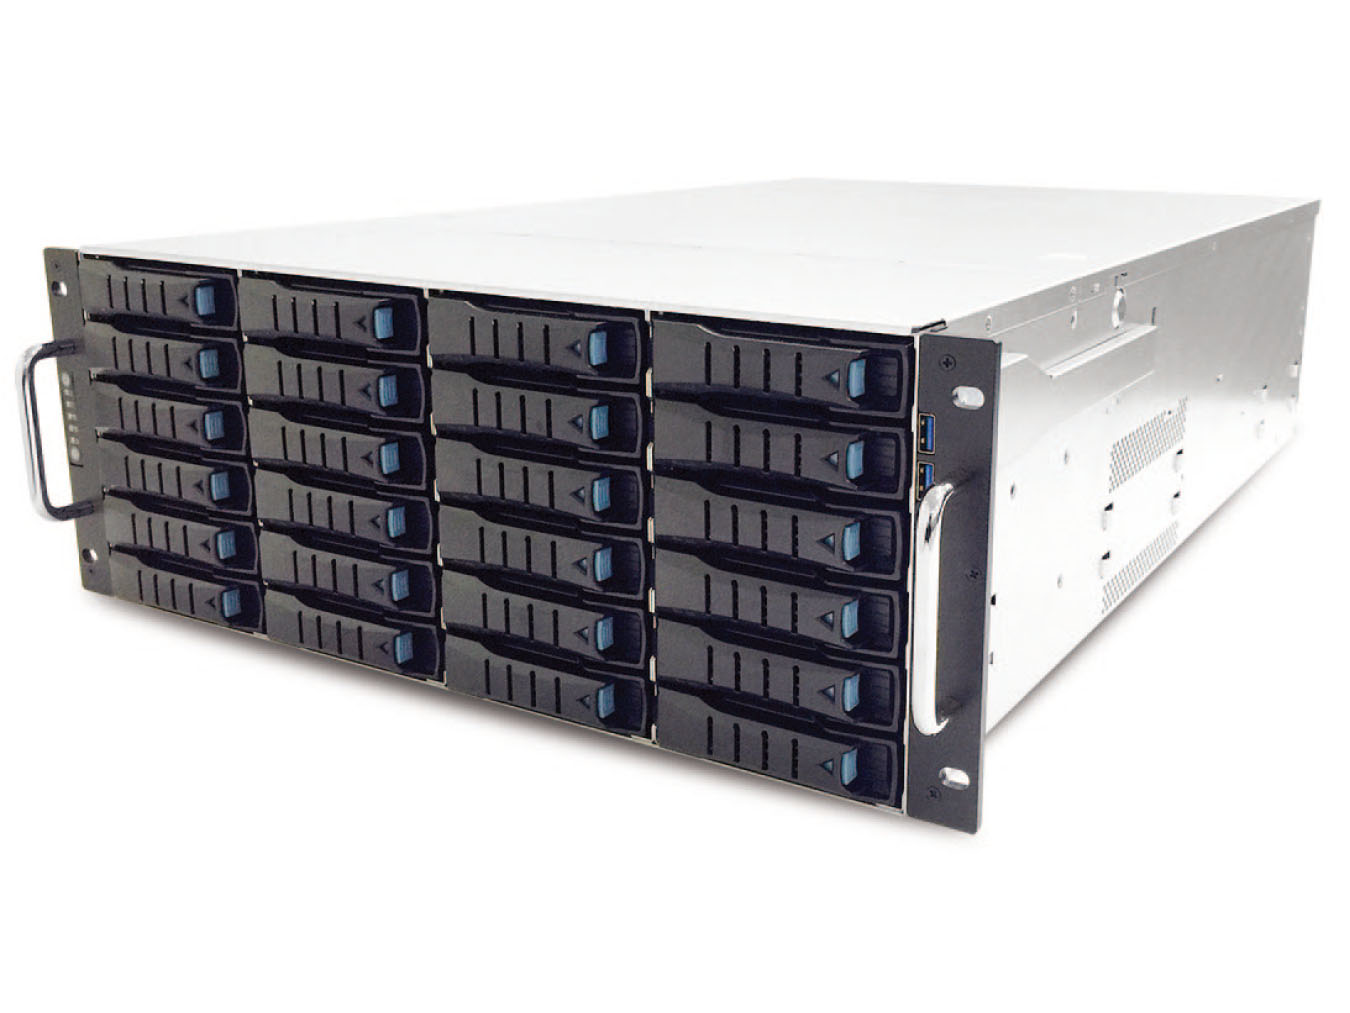 AIC SB402-LB XP1-S402LB01 4U 36-Bay Storage Server